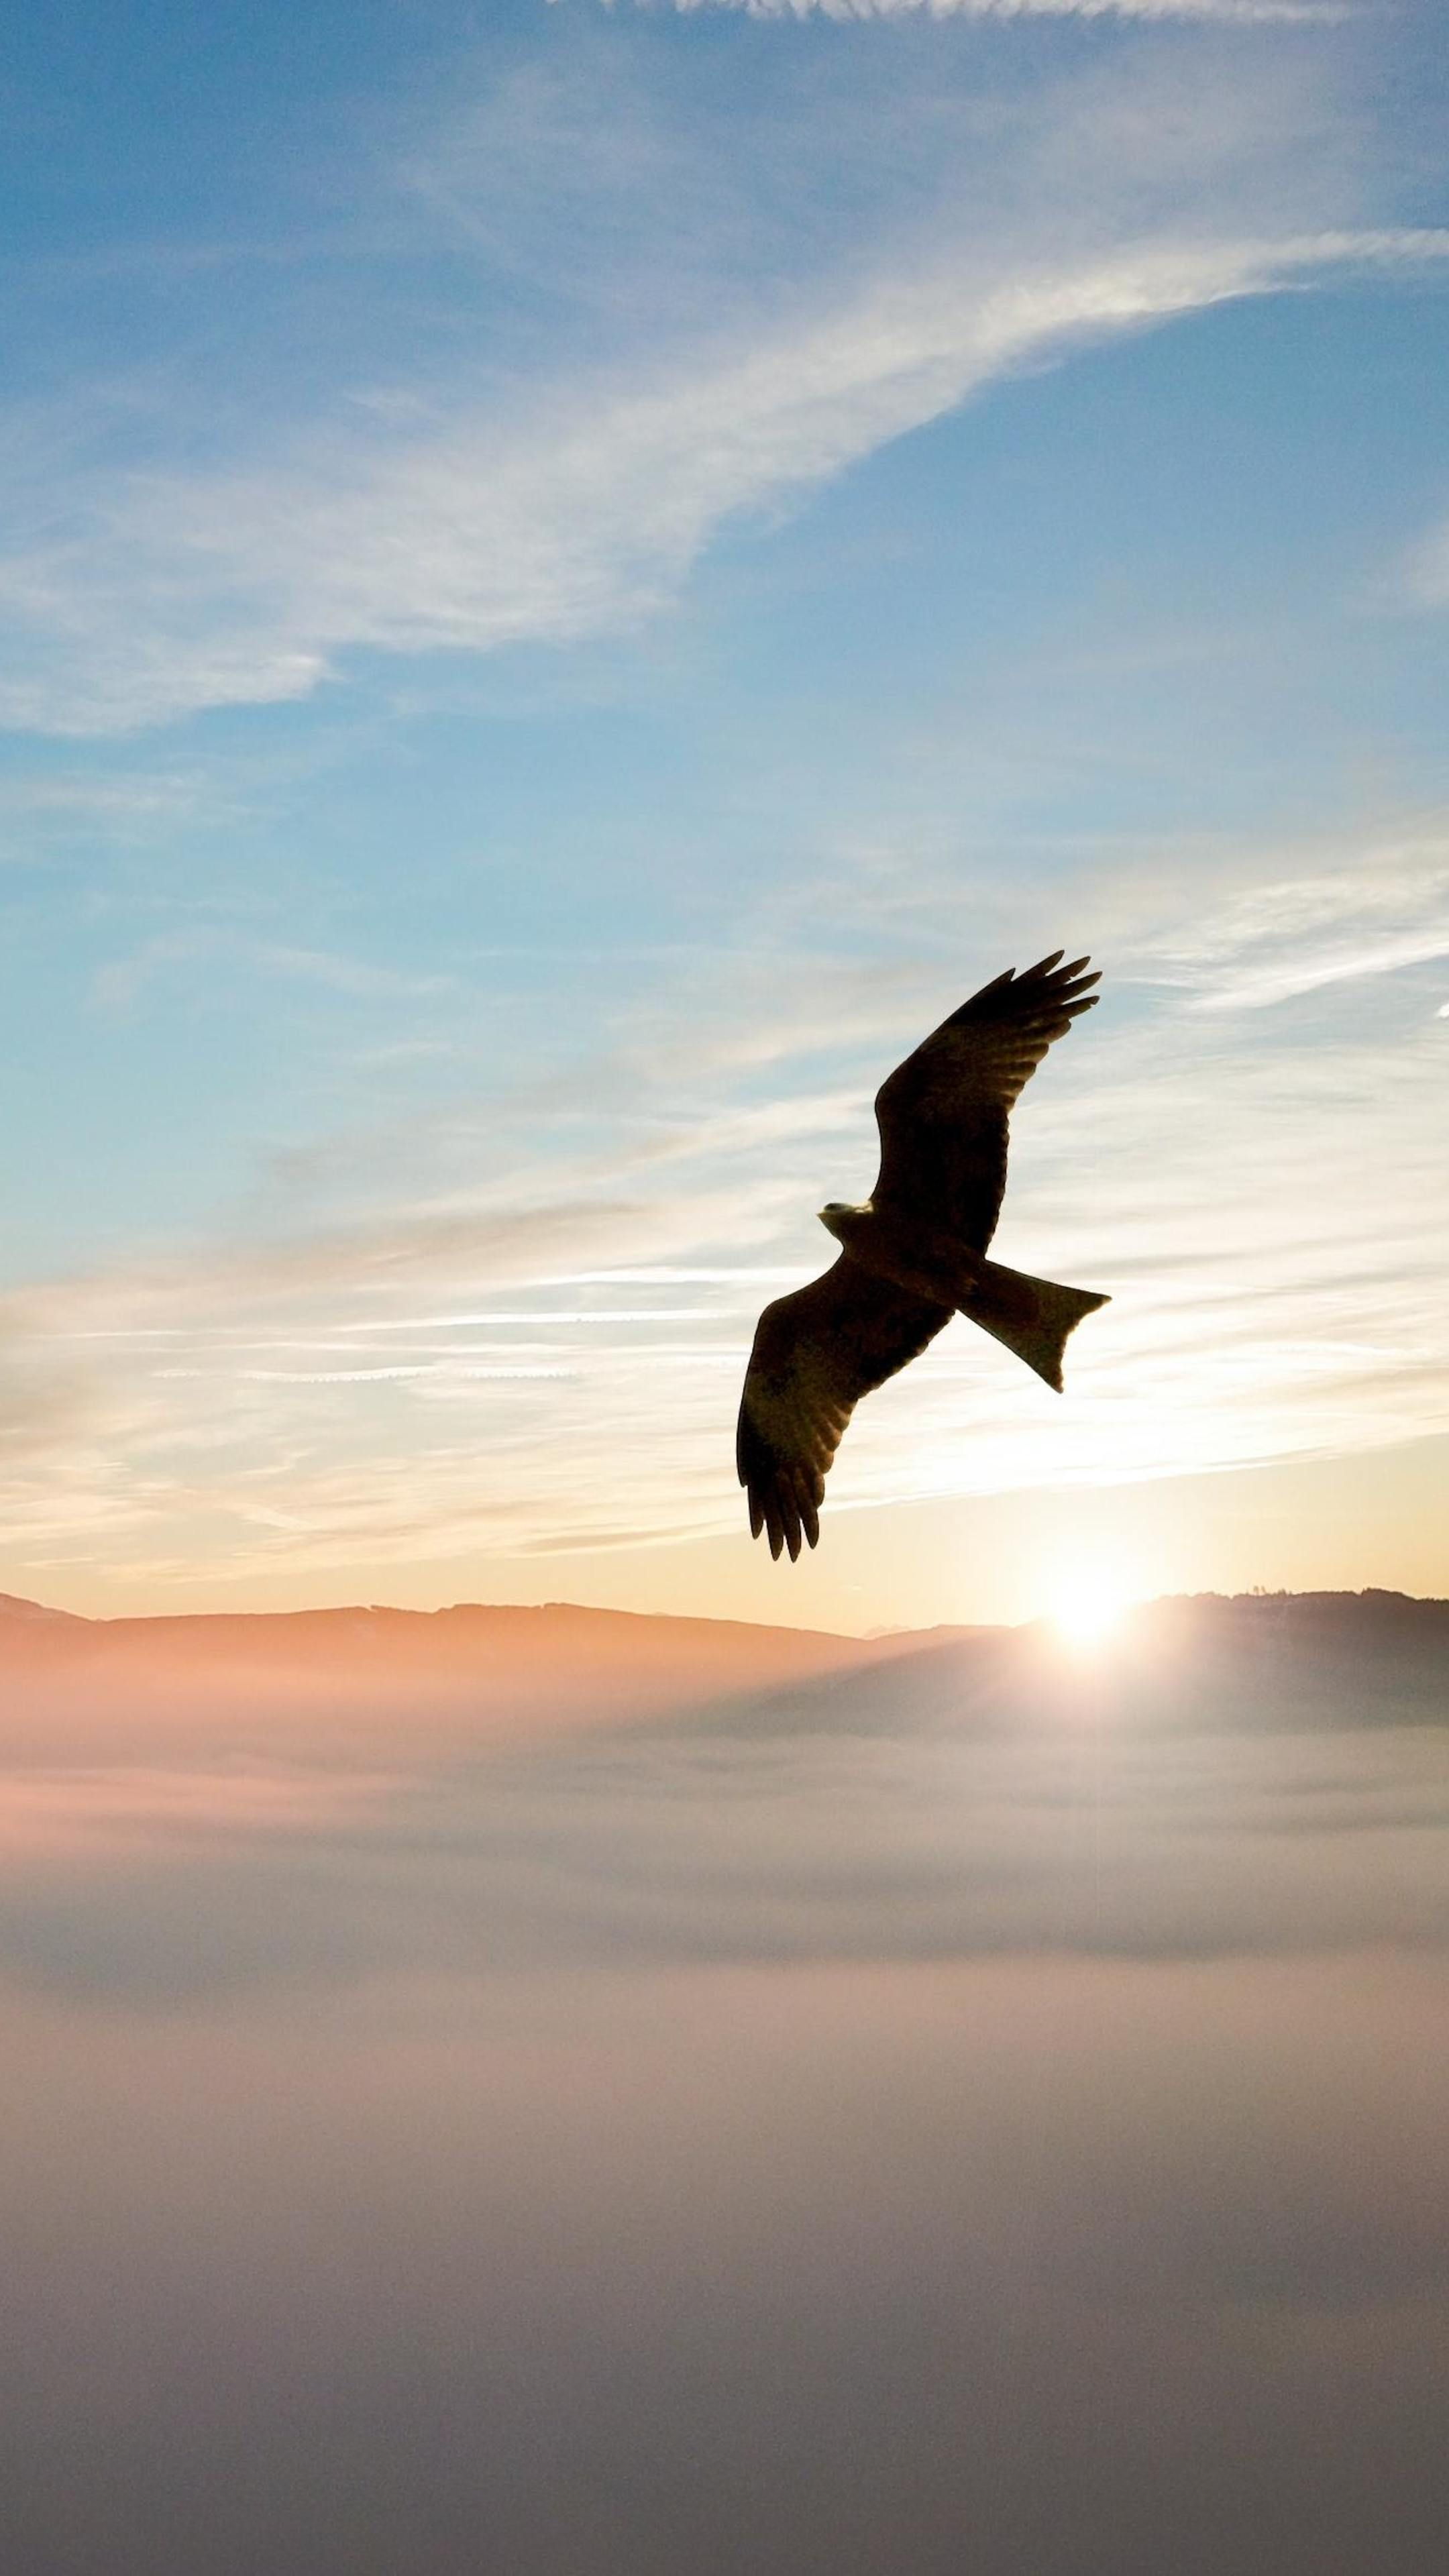 Animals Bird Flying Over Clouds 4k Wallpapers Phone Wallpaper Qhd Wallpaper Wallpaper